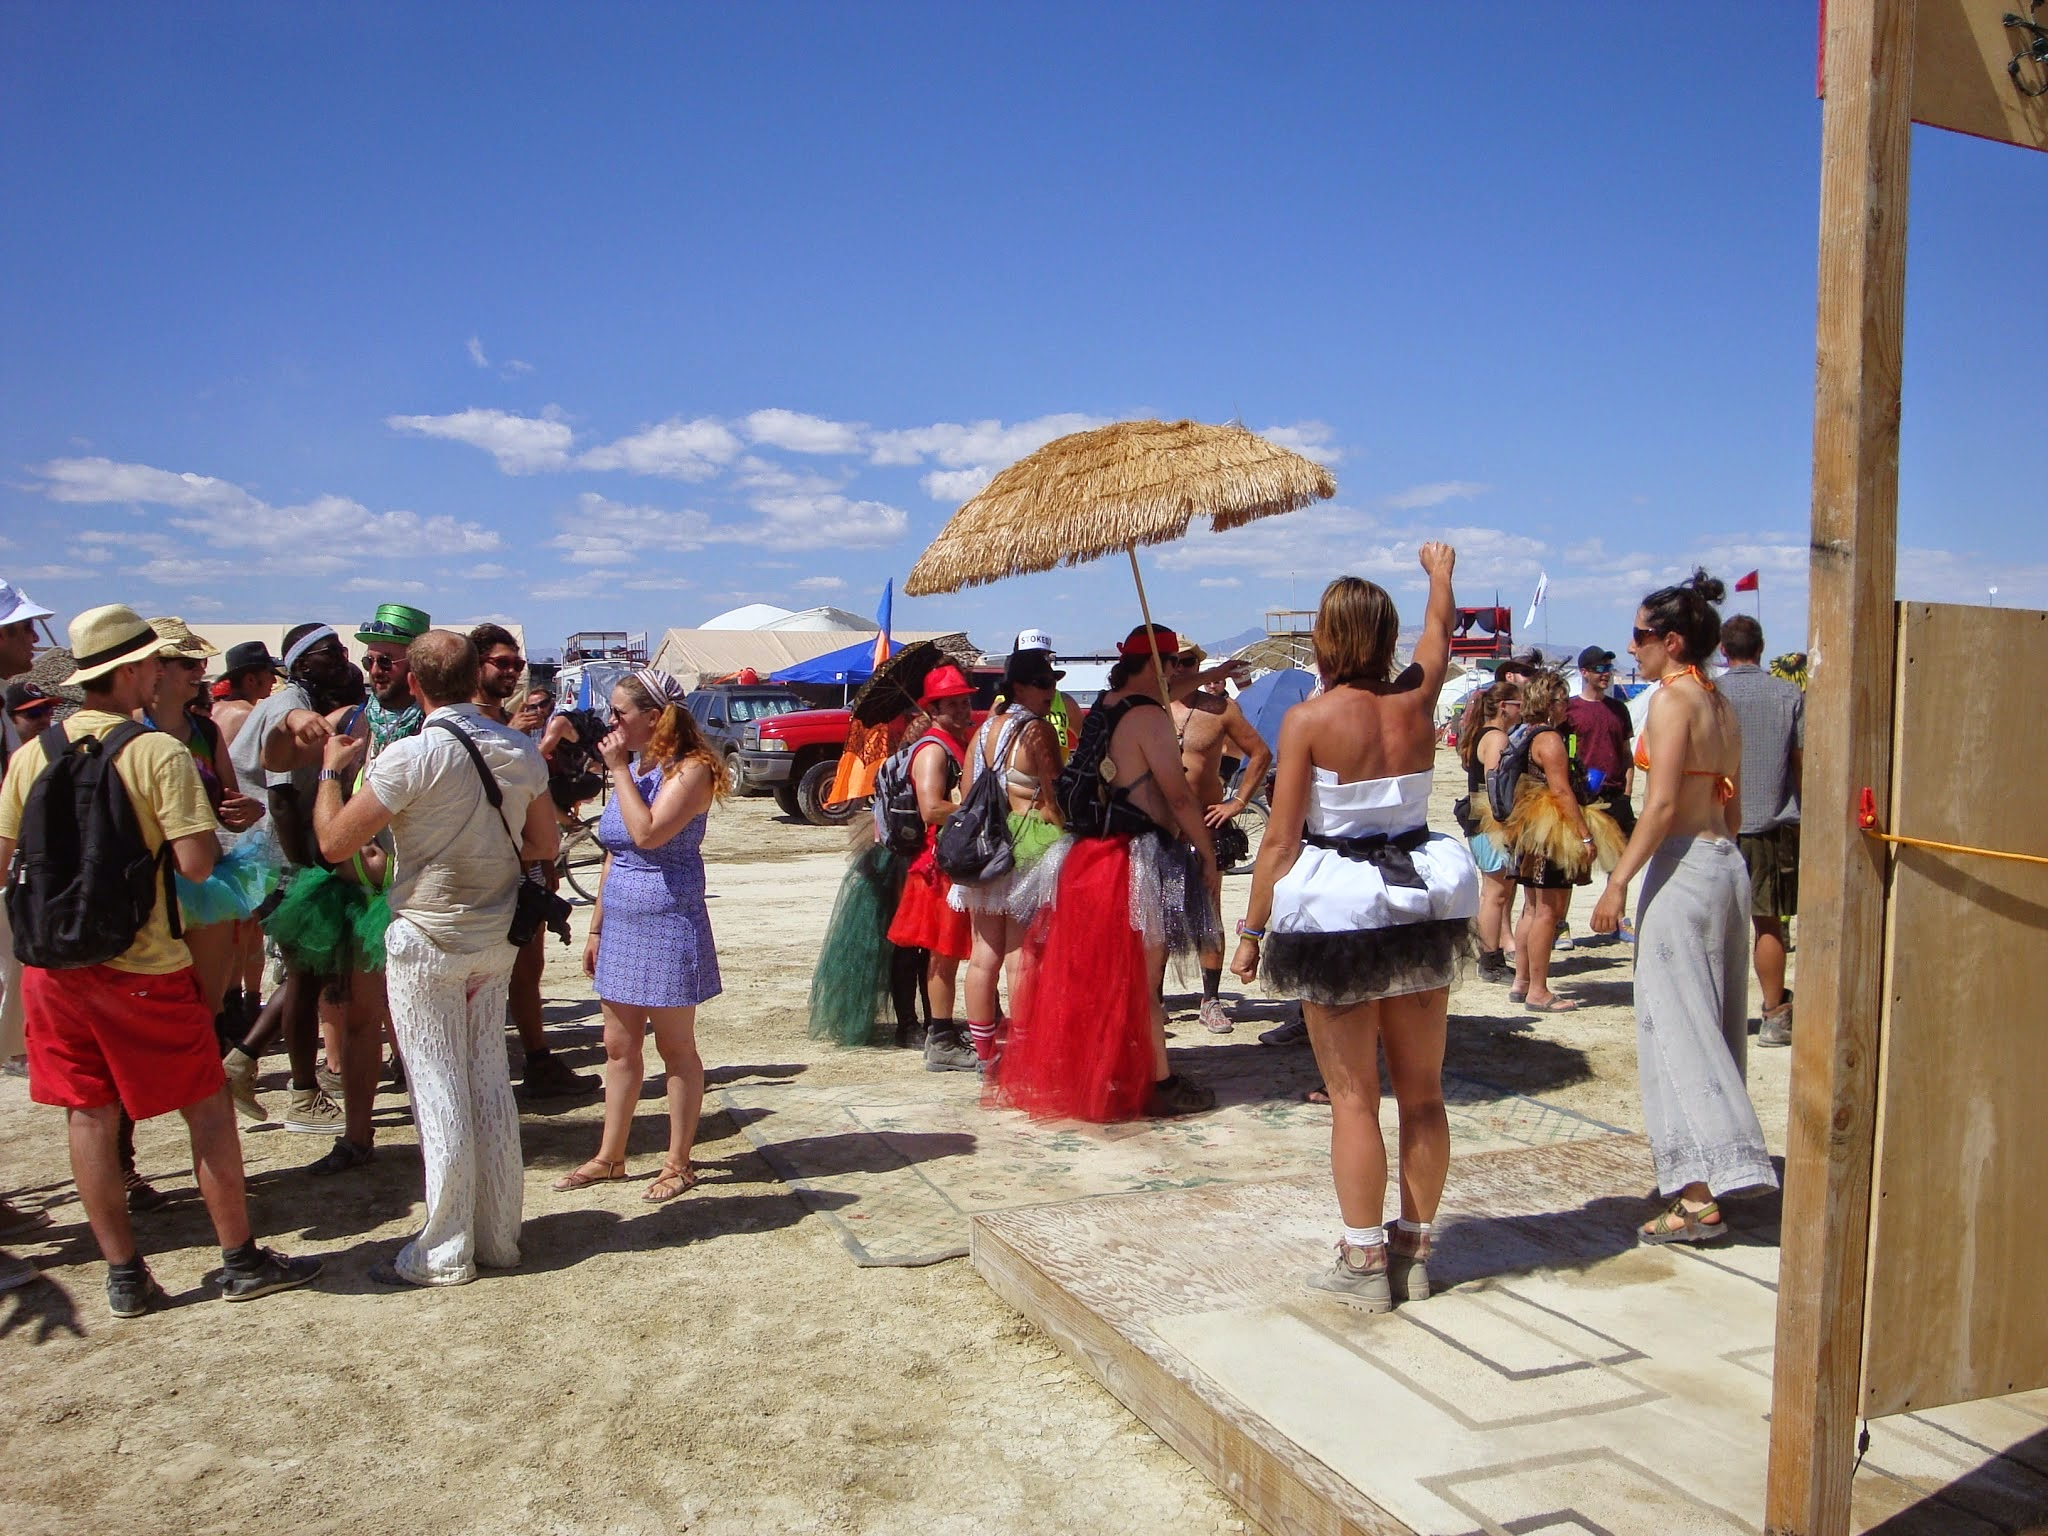 Leading a Yes workshop on how to make the most of your Burning Man. 2014